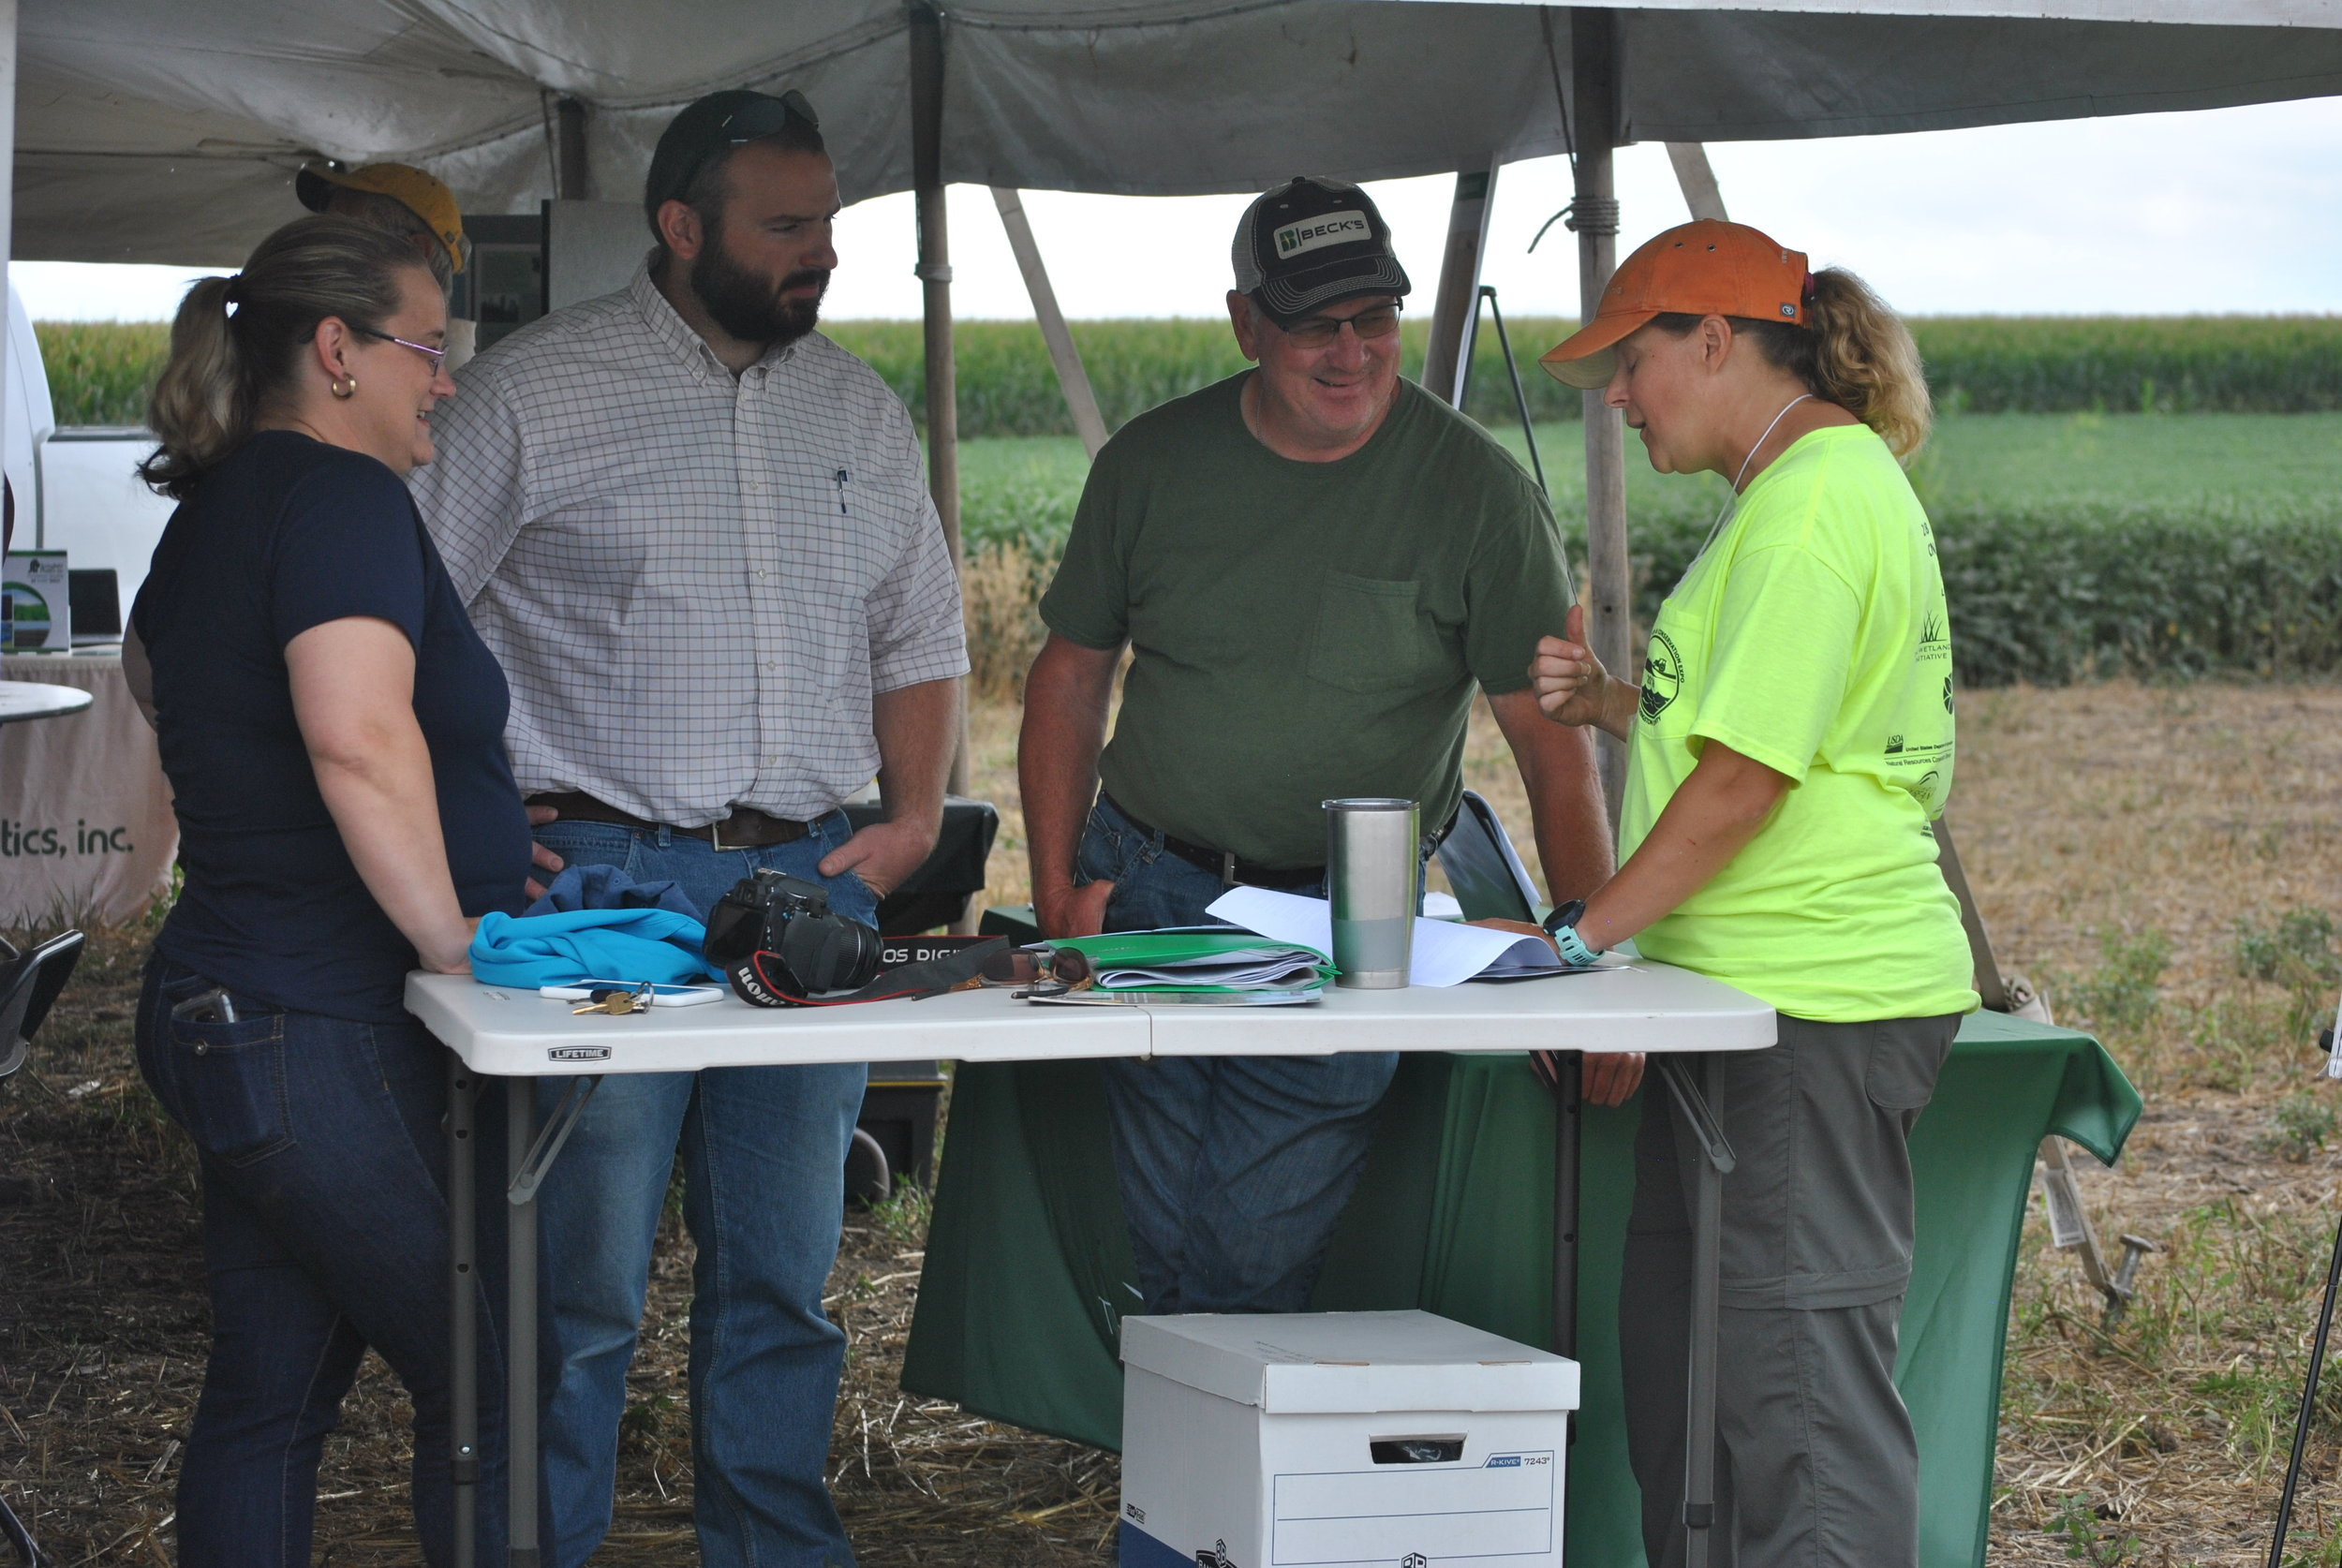 TWI Senior Environmental Engineer Dr. Jill Kostel (in orange cap) speaks with LCSWCD Resource Conservationist Becky Taylor, NRCS District Conservationist Adam Wyant, and a local farmer (from left to right). Photo by Jean McGuire/TWI.